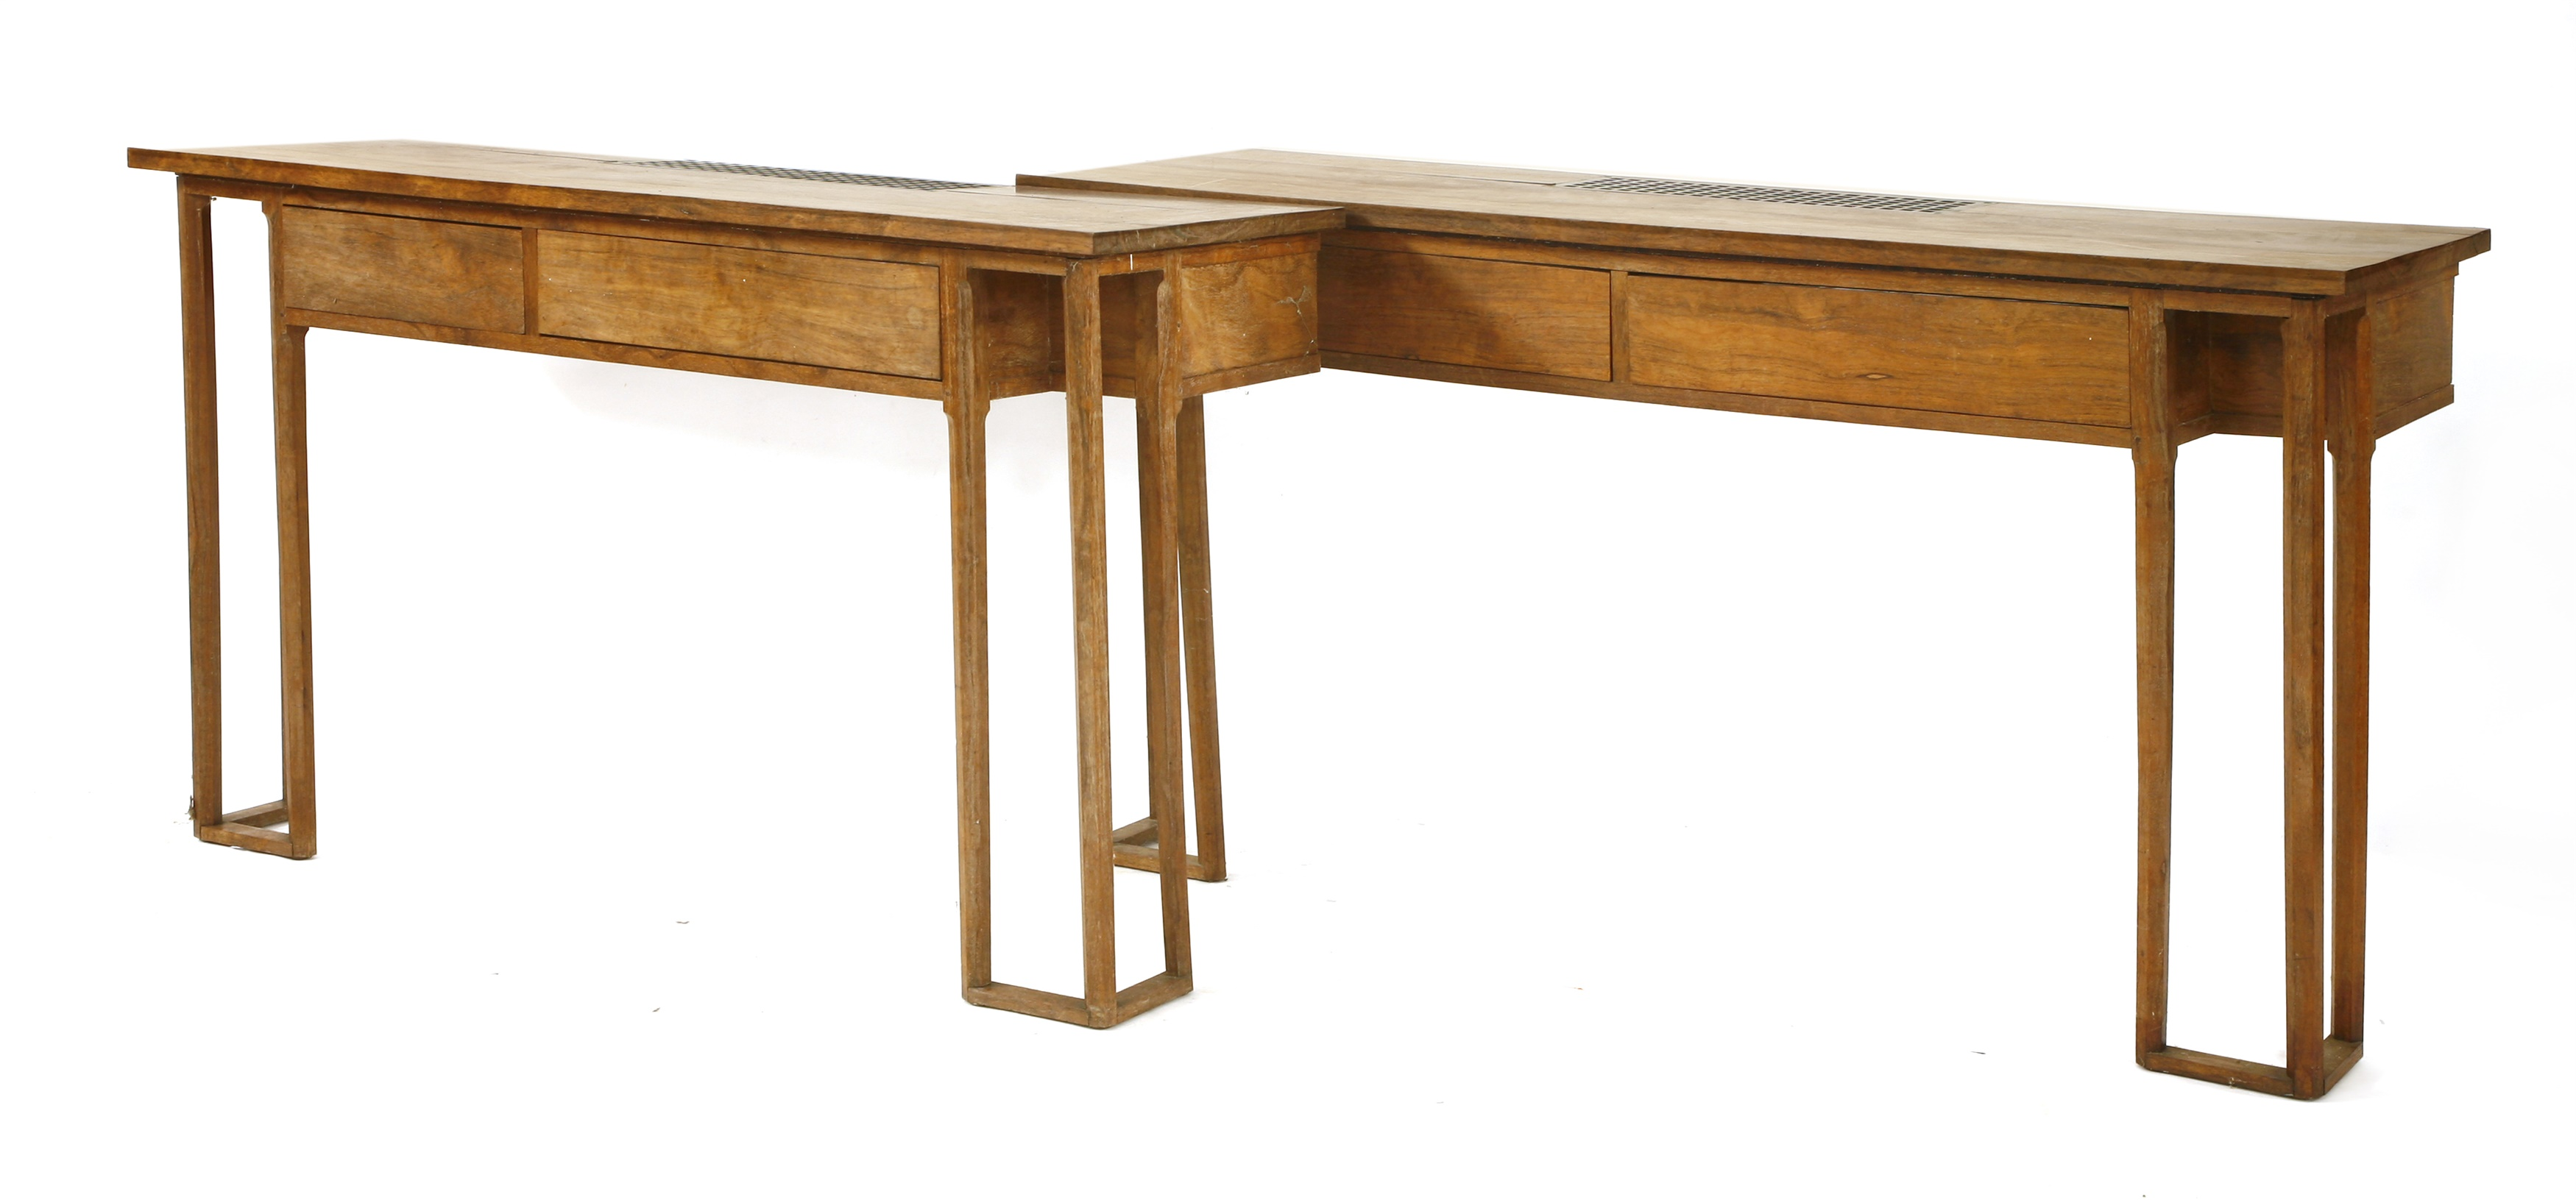 Lot 62 A pair of Arts and Crafts laurel wood console tables, designed by Montagu Norman